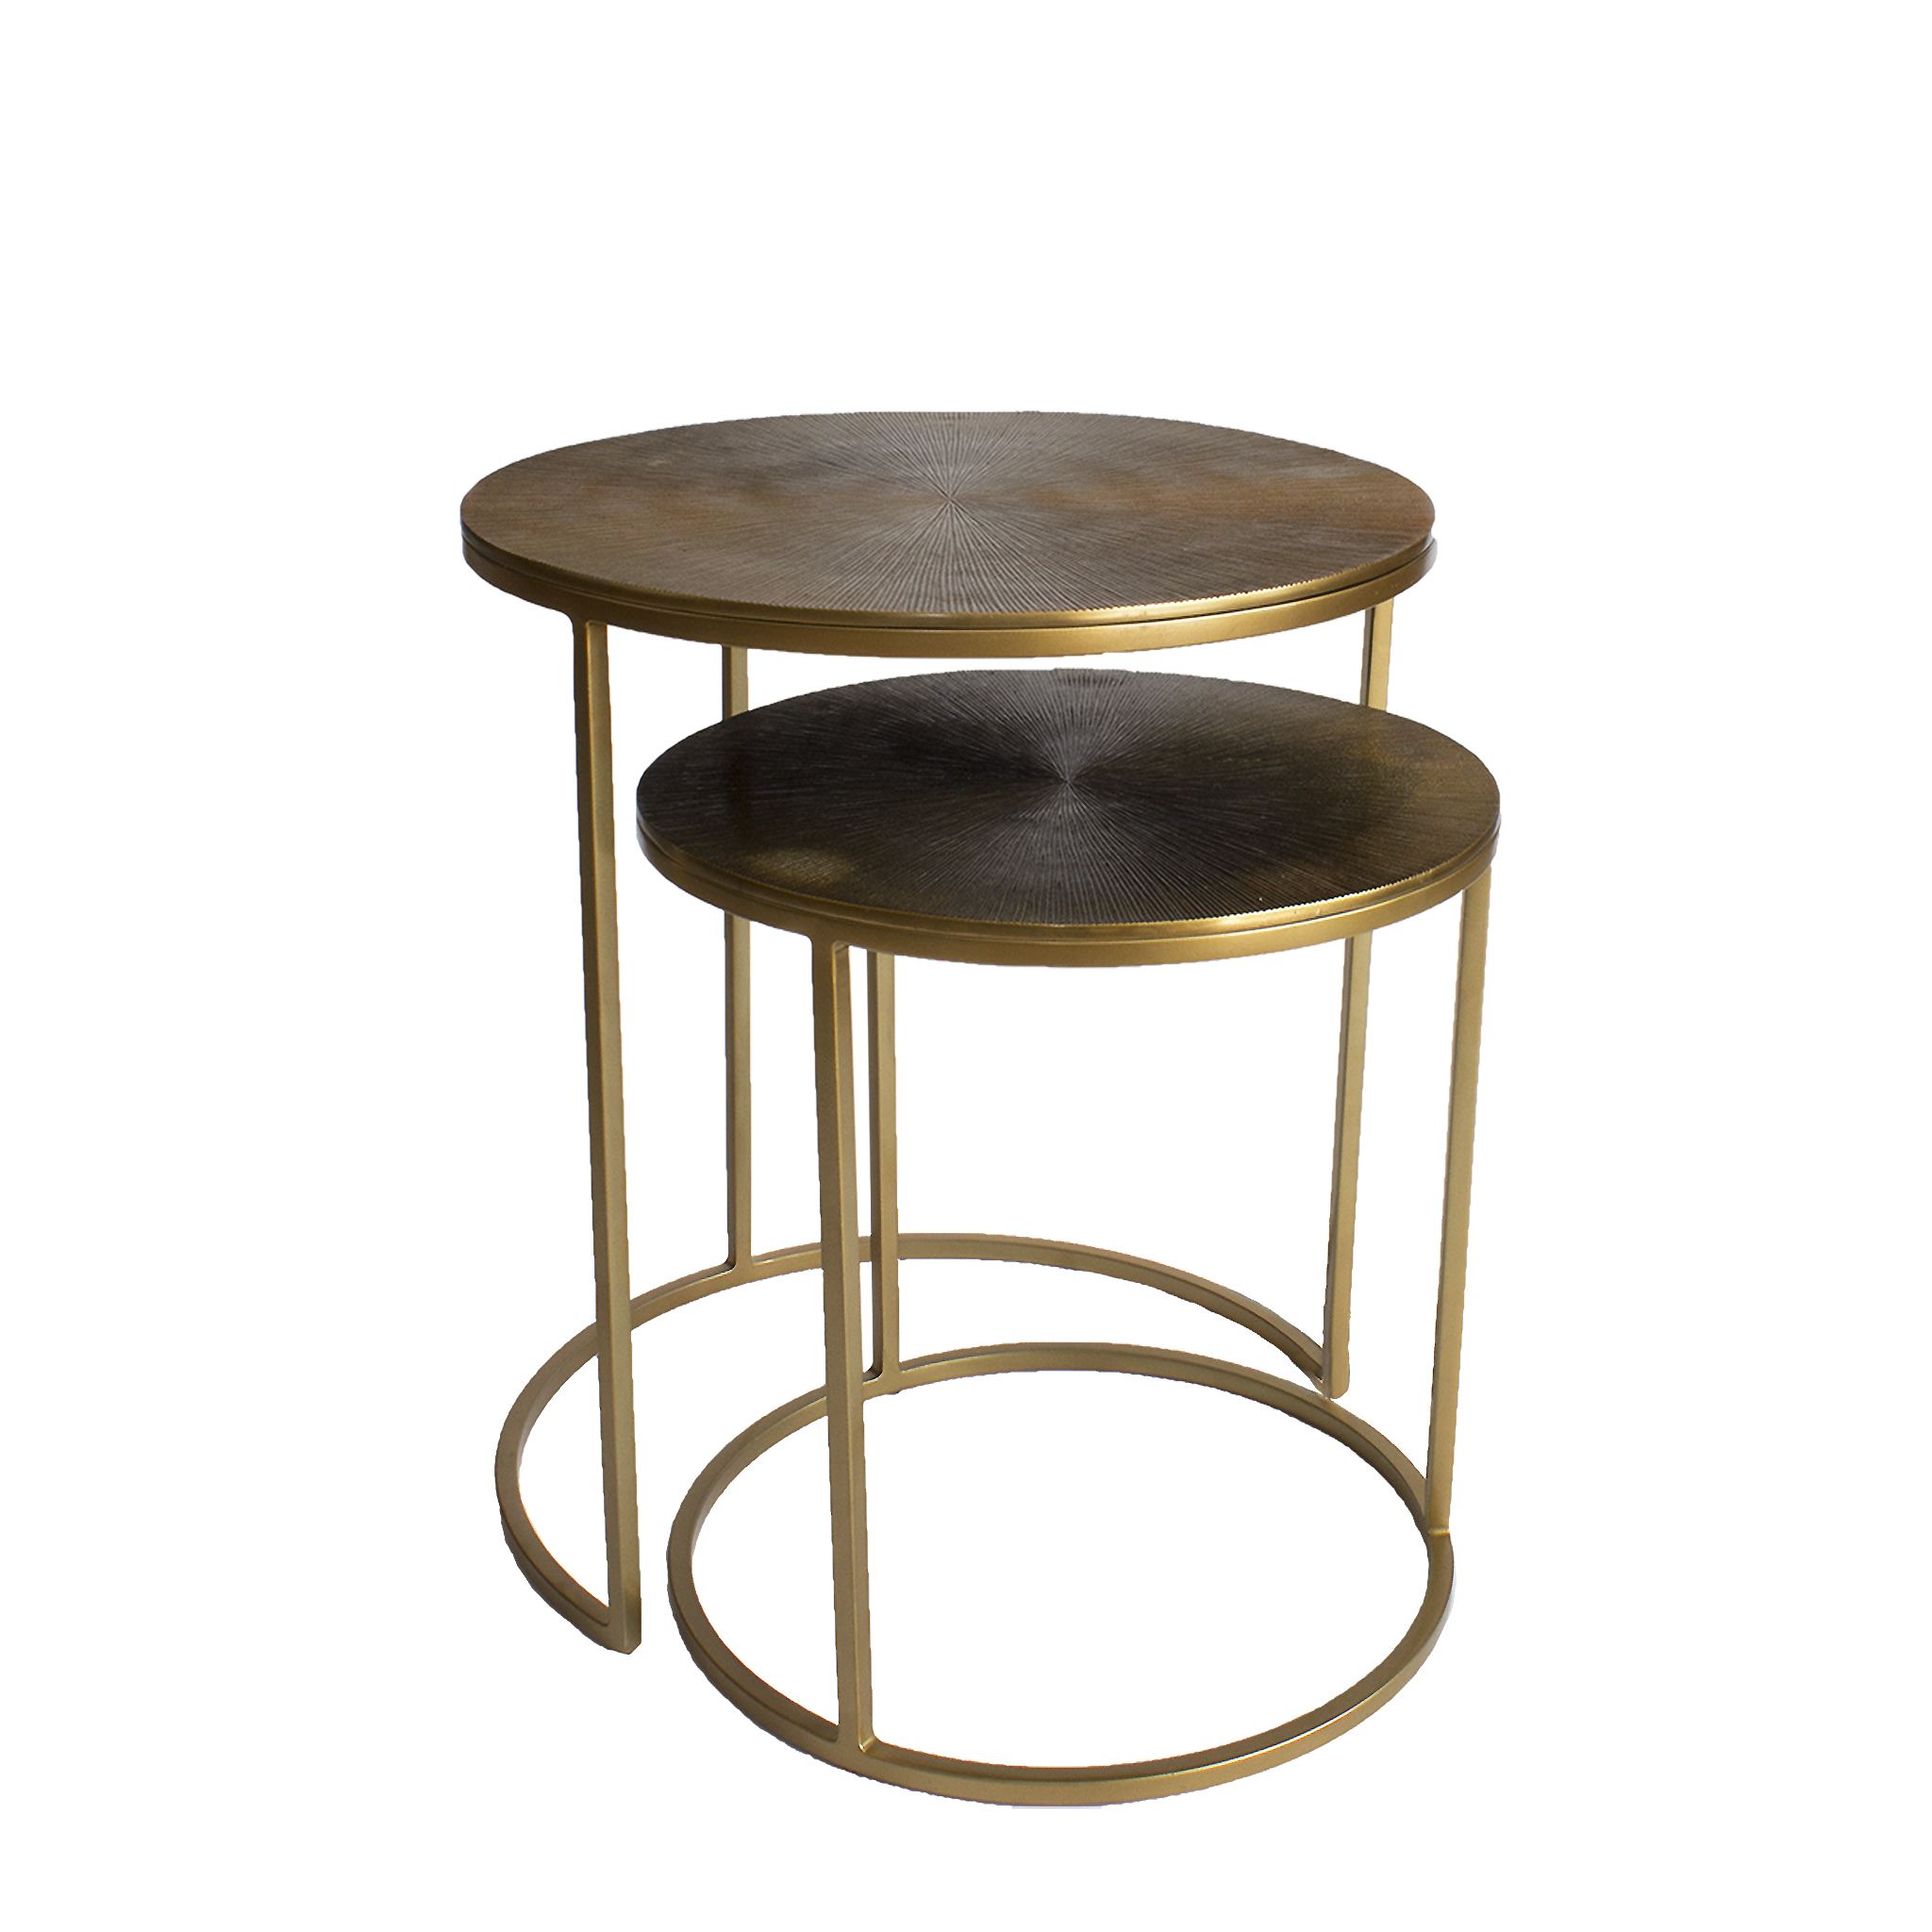 wicker size black for small large lamp stand glass room round oak gold corner phone drink decorative coffee living full modern end accent marble tables awesome acrylic decor of elegant sale side table clear narrow designs hammered rustic wood metal pedestal trunk inch and octagon